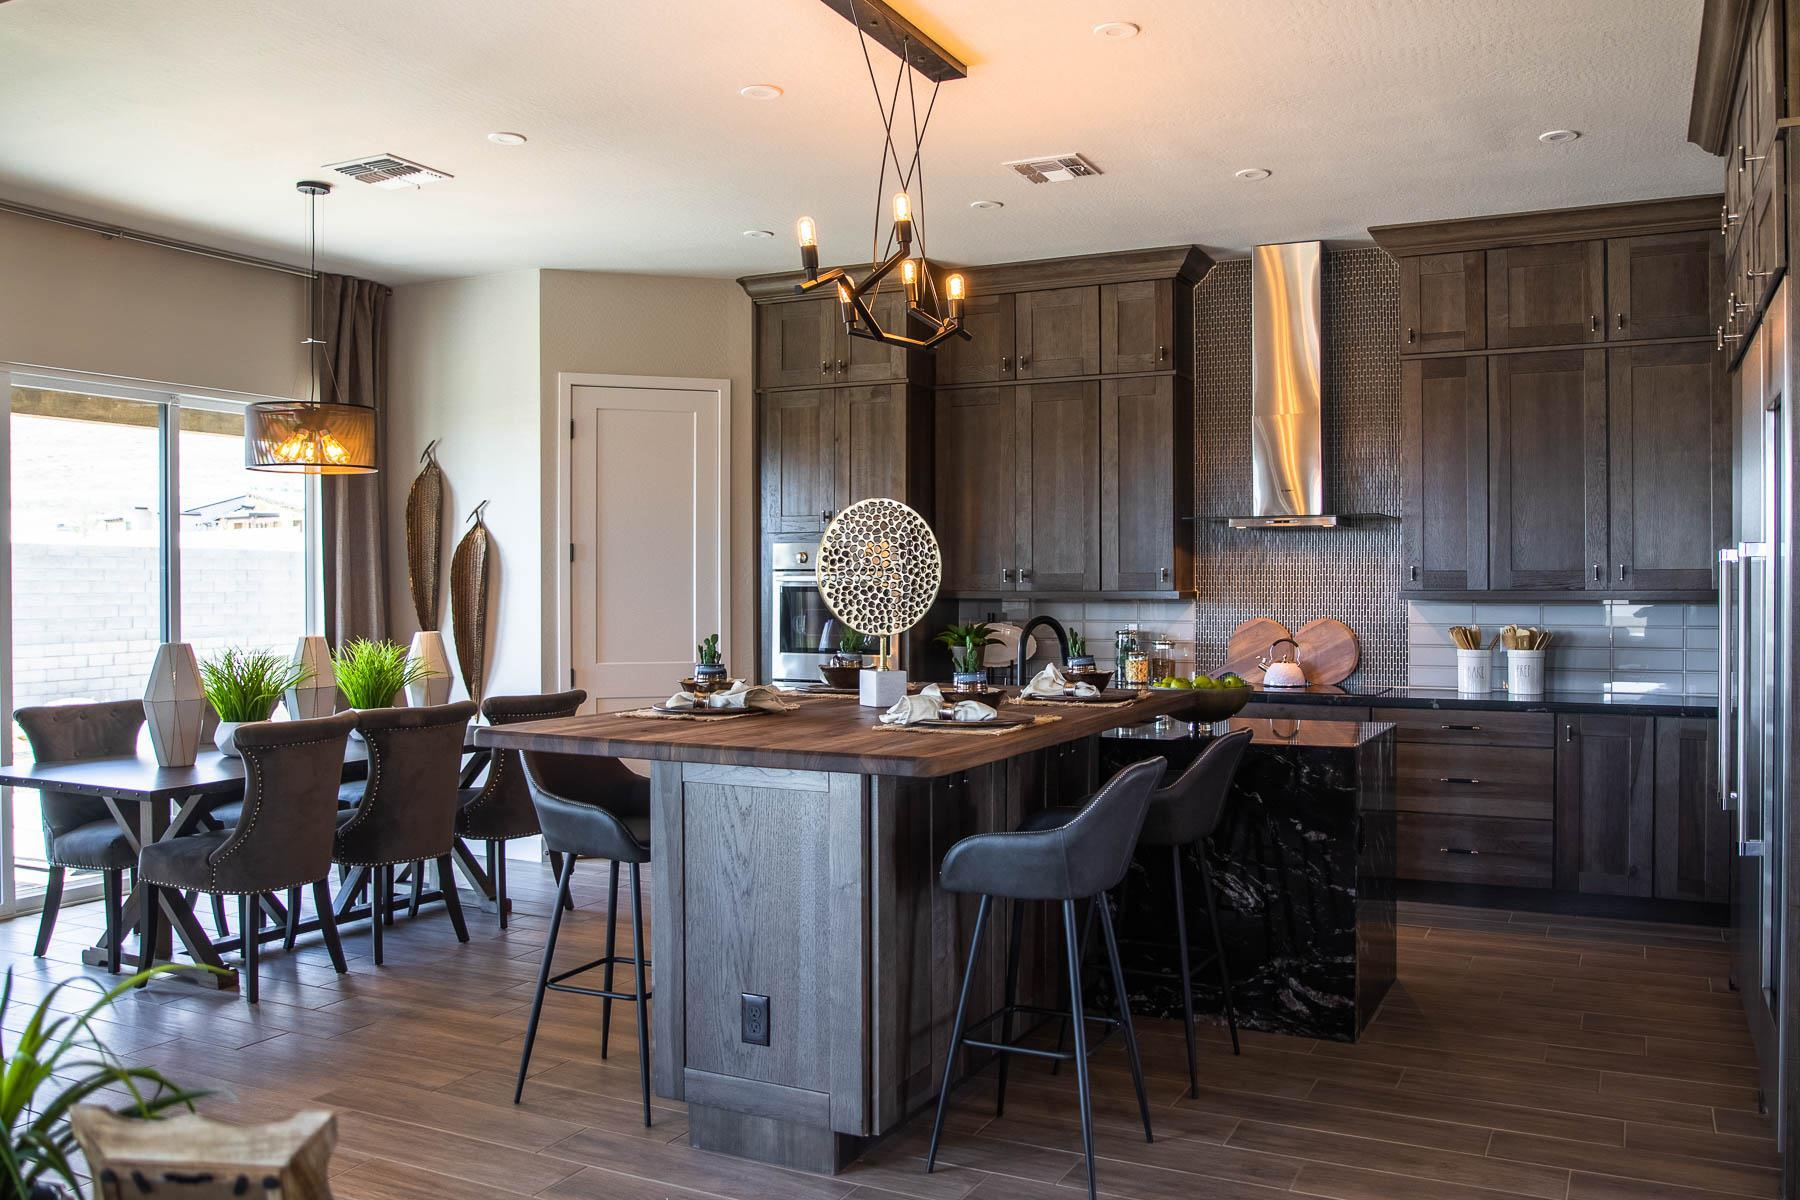 Kitchen featured in the J706 By Mandalay Homes in Prescott, AZ